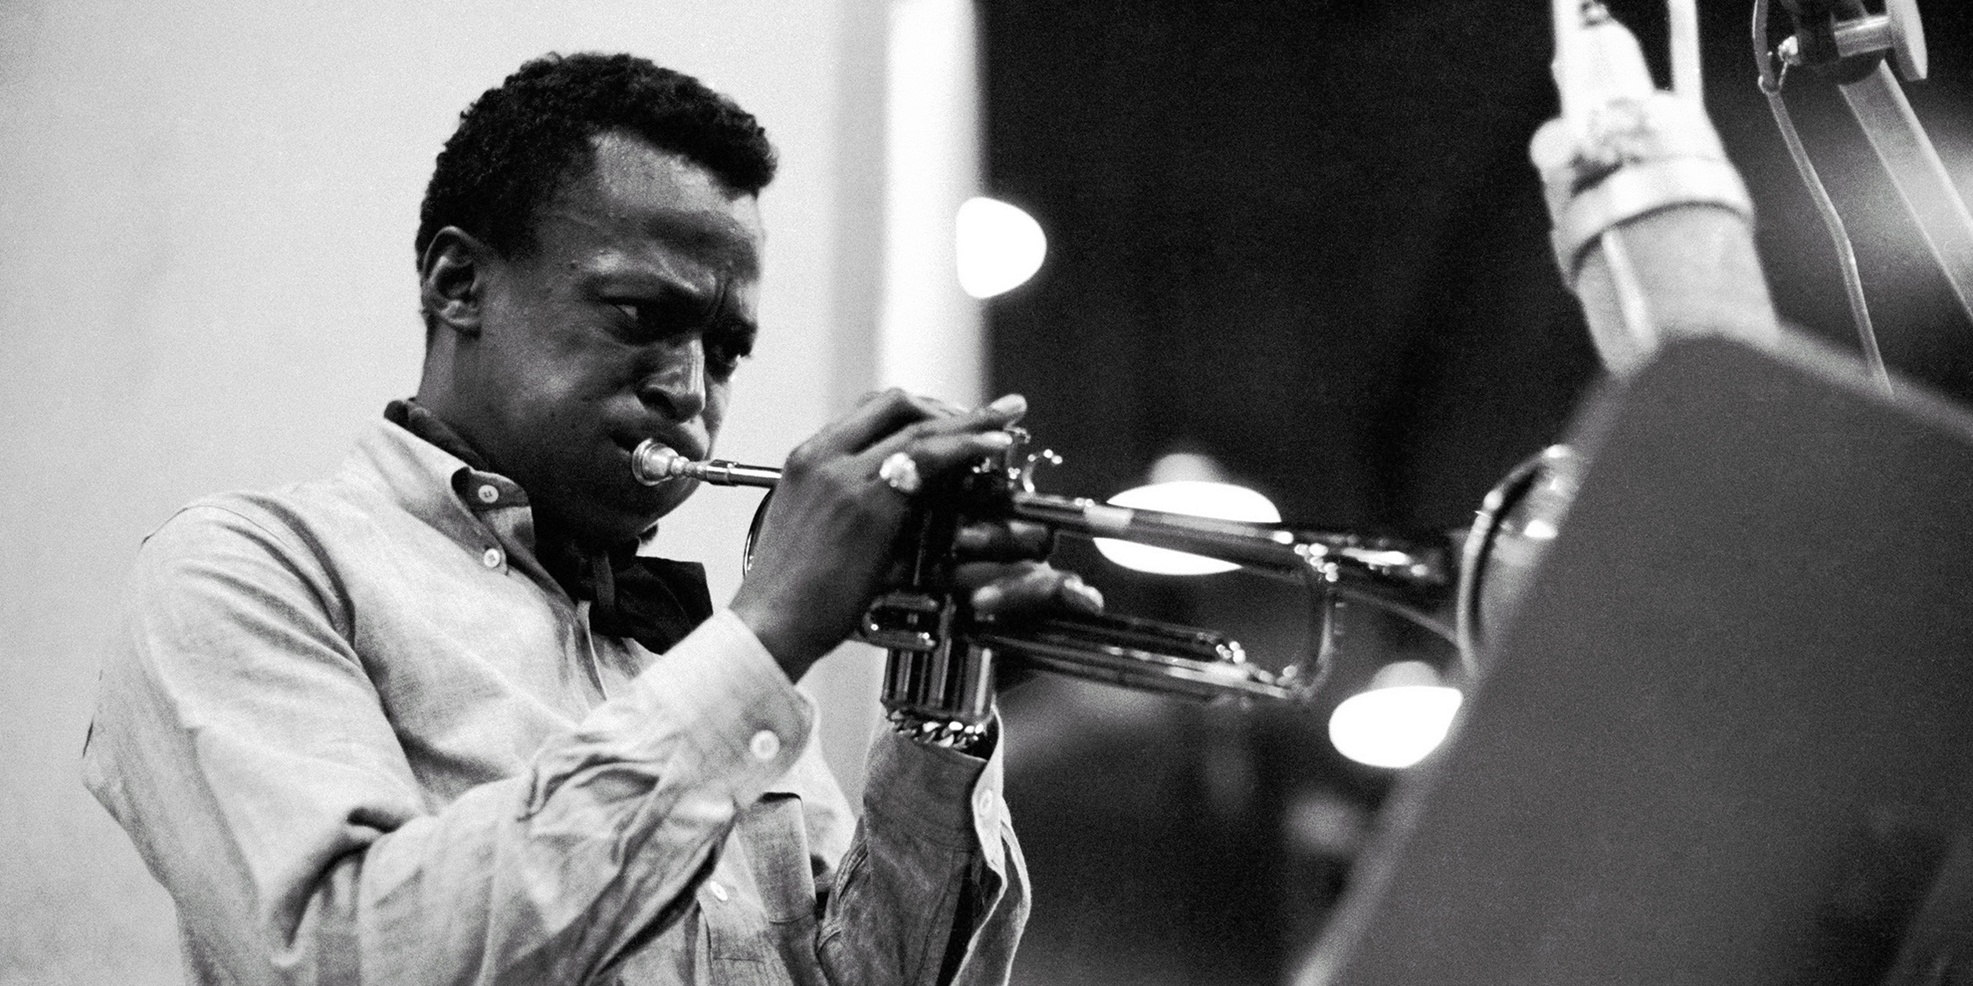 A group of Singaporean musicians will be paying tribute to Miles Davis